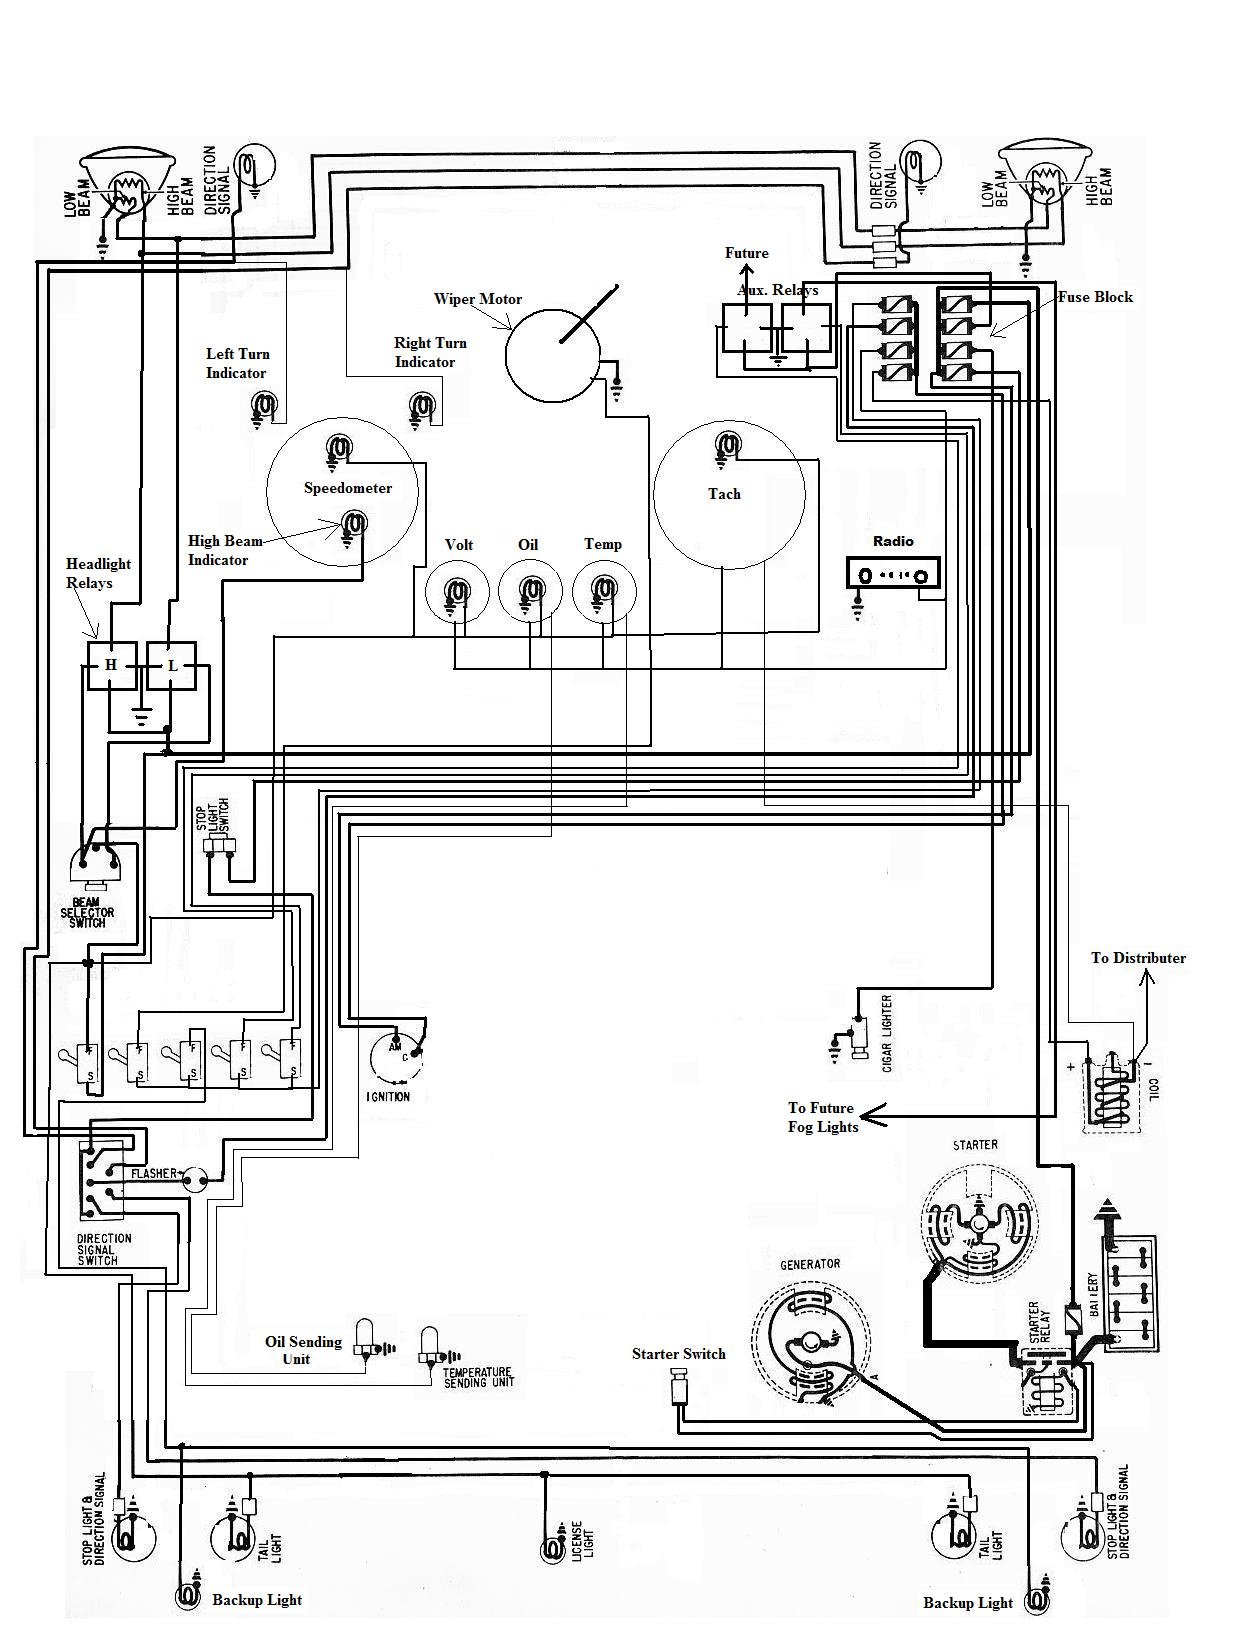 dunebuggy_wiring other diagrams dune buggy wiring diagram at webbmarketing.co